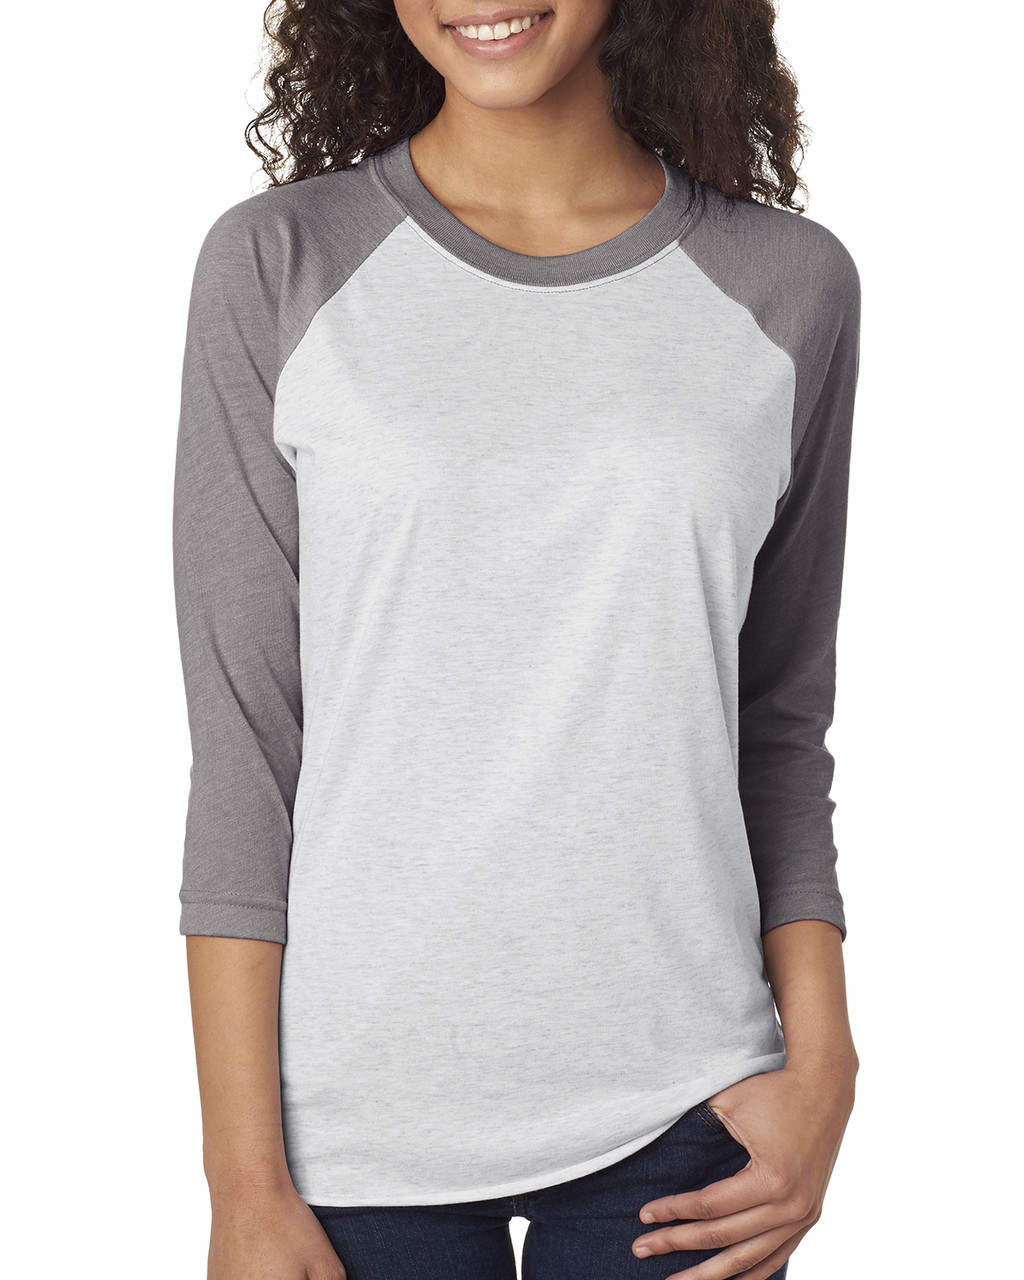 Heather/Heather White - 6051 Next Level Unisex Tri-Blend 3/4-Sleeve Raglan Tee | Blankclothing.ca